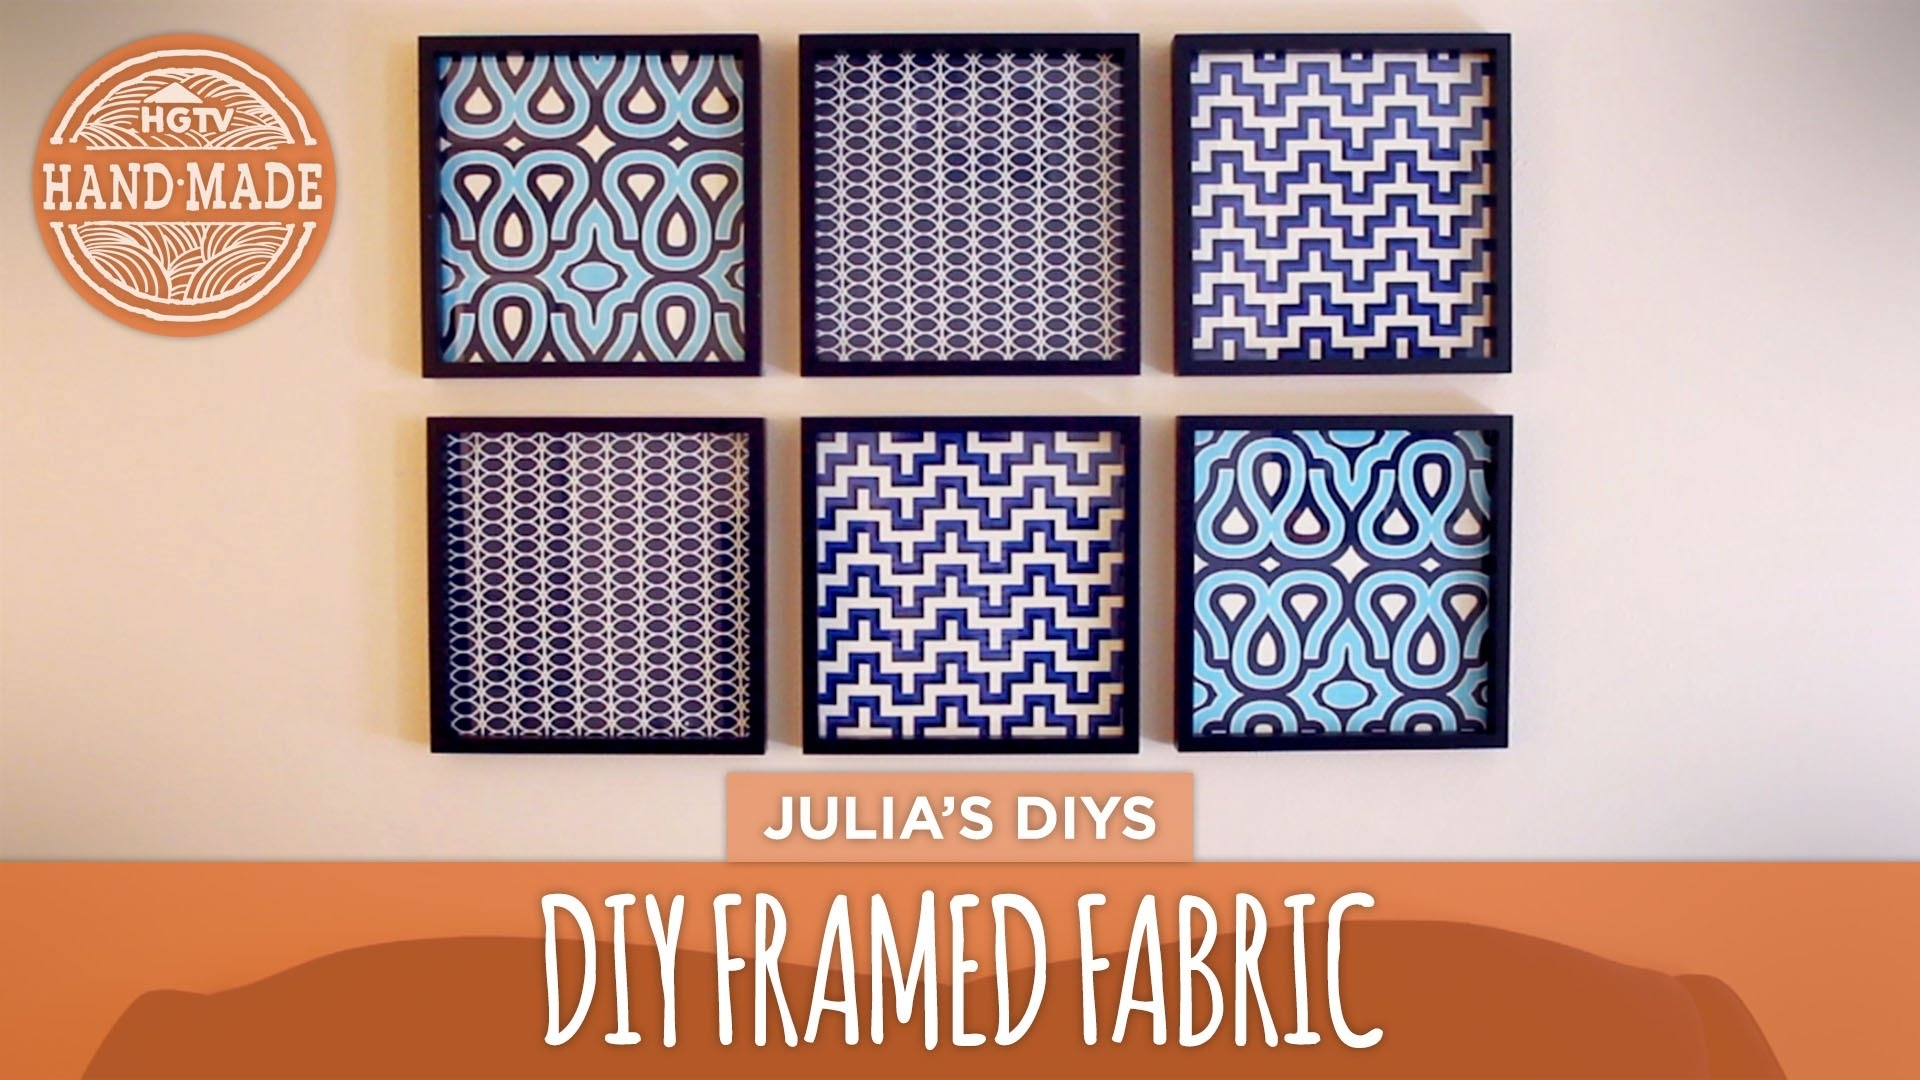 Diy Framed Fabric Gallery Wall – Hgtv Handmade – Youtube In Most Recently Released Blue Fabric Wall Art (View 10 of 15)